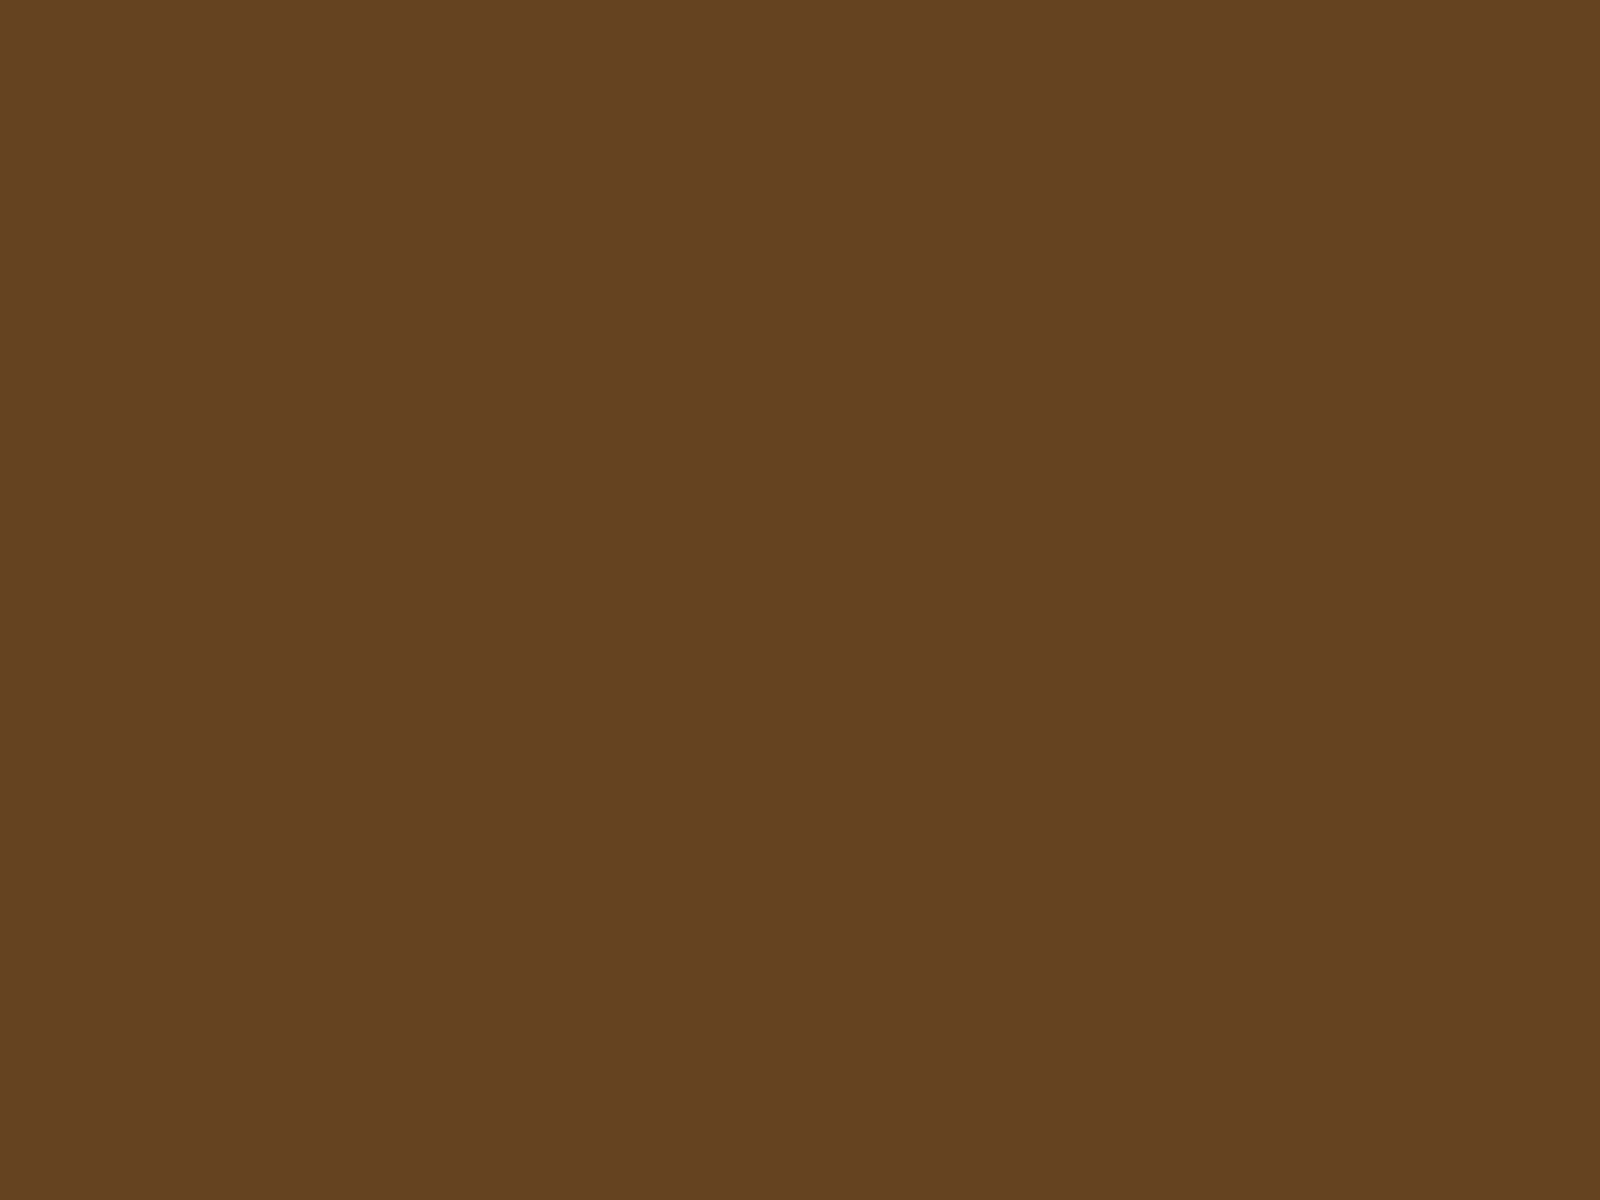 Solid Brown Wallpapers   Top Solid Brown Backgrounds 1600x1200